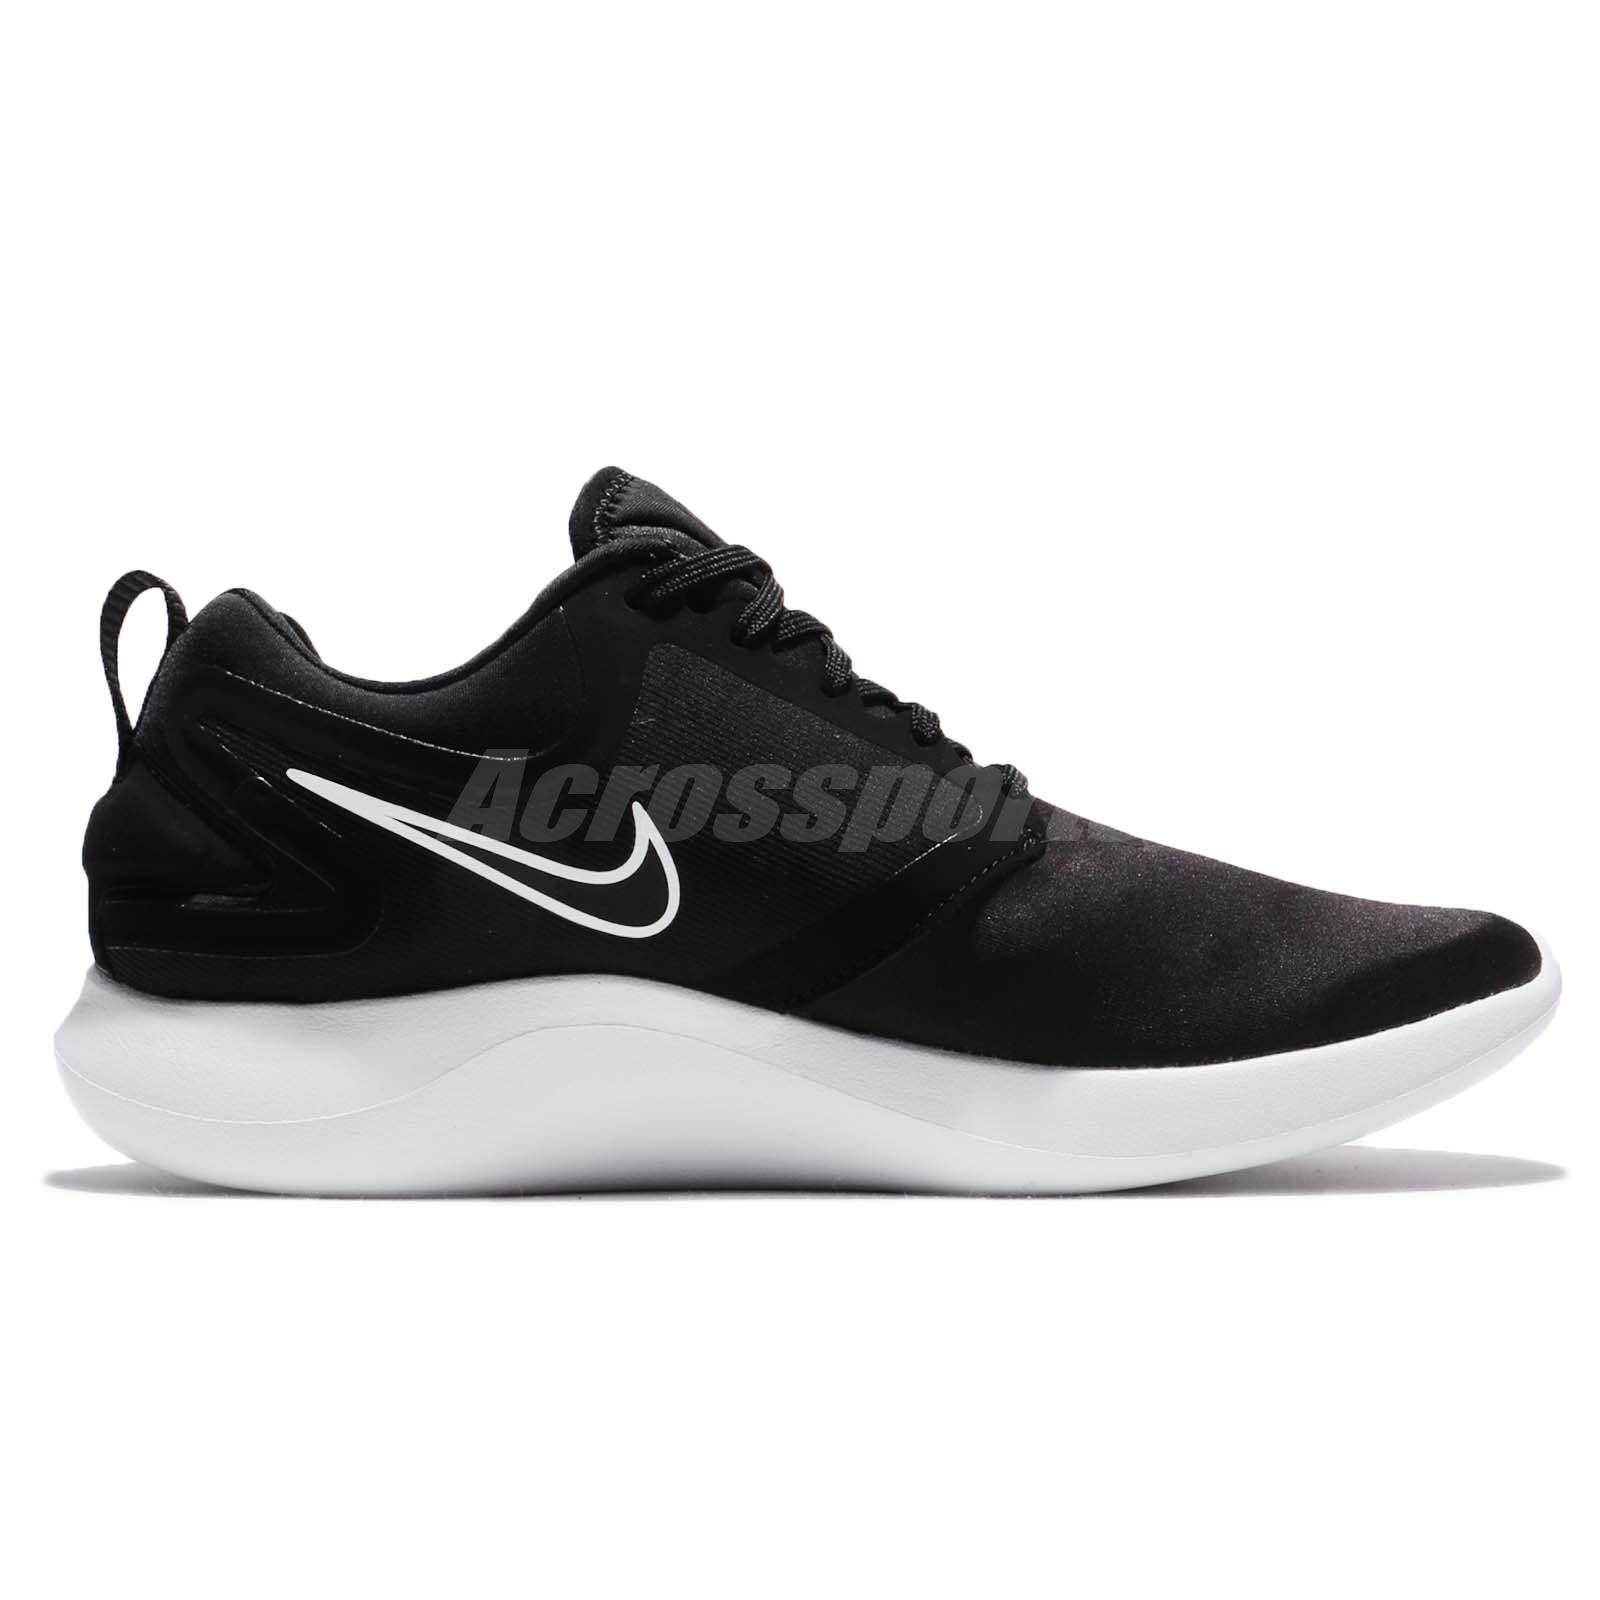 1b0923ca6dc30 Nike Lunarsolo Black White Men Running Shoes Sneakers Trainers ...